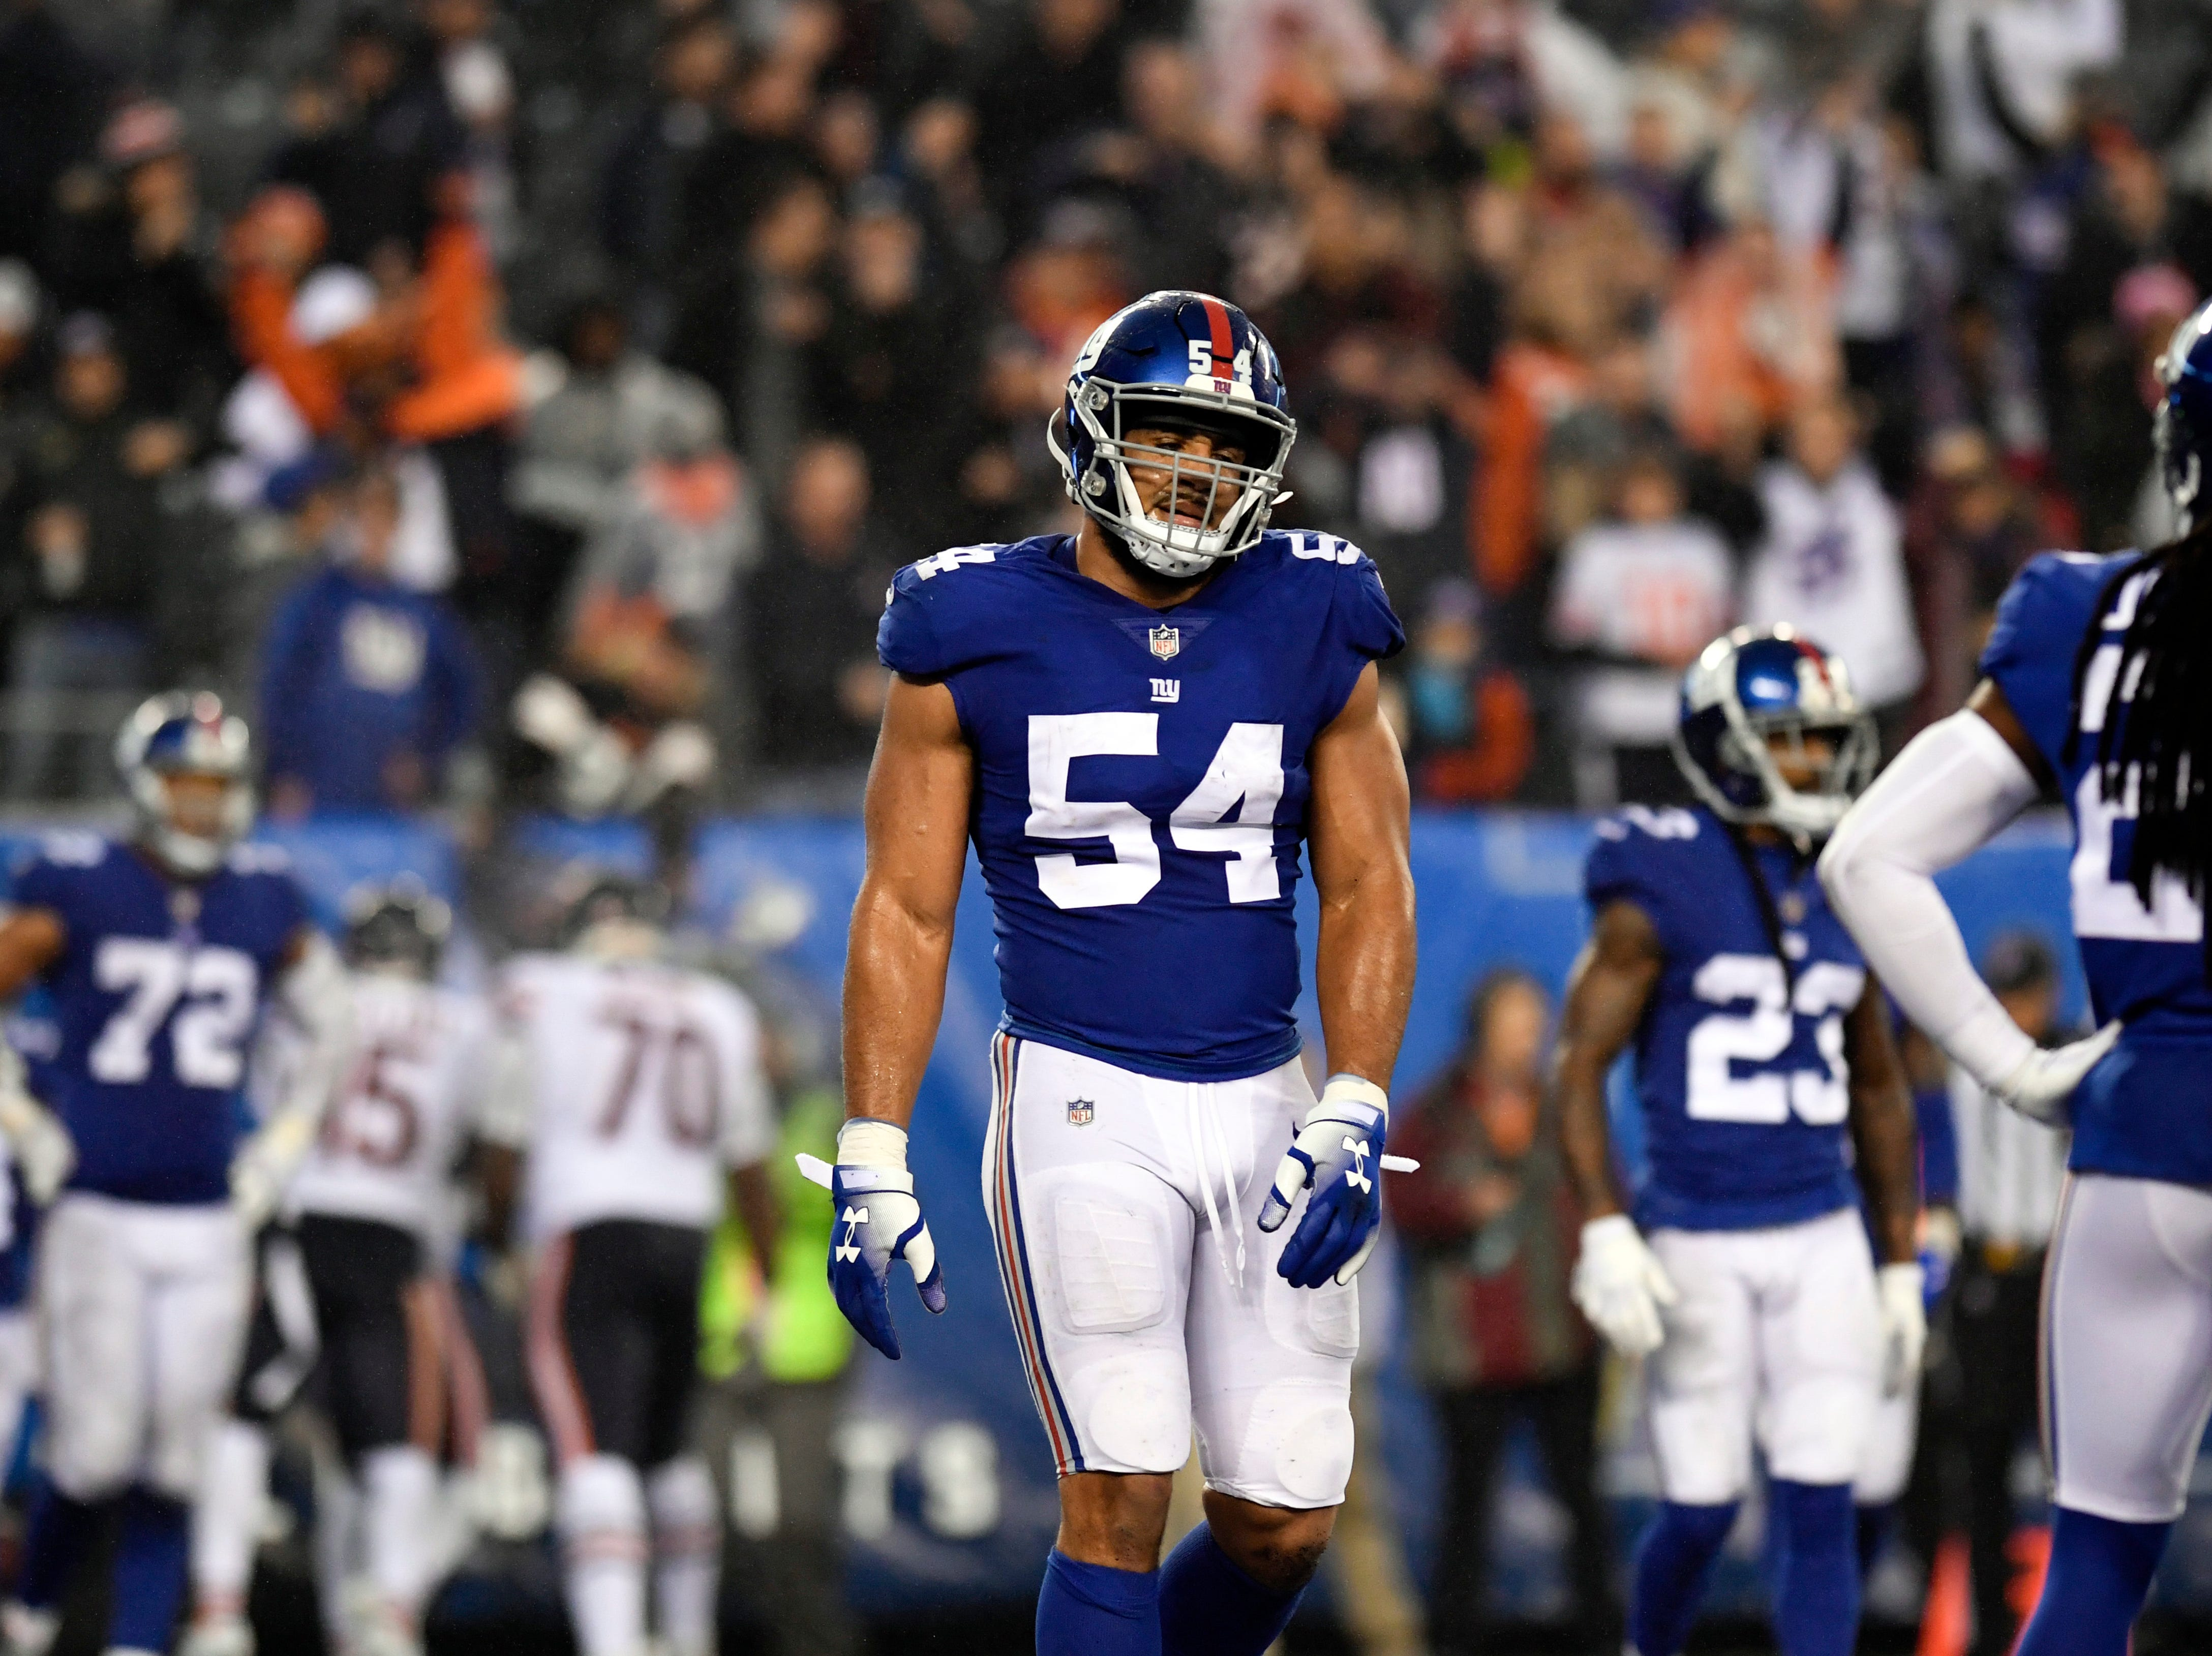 New York Giants linebacker Olivier Vernon (54) reacts as the Giants allow the Bears to score a touchdown, sending the game into overtime. The New York Giants defeat the Chicago Bears in overtime 30-27 on Sunday, Dec. 2, 2018, in East Rutherford.